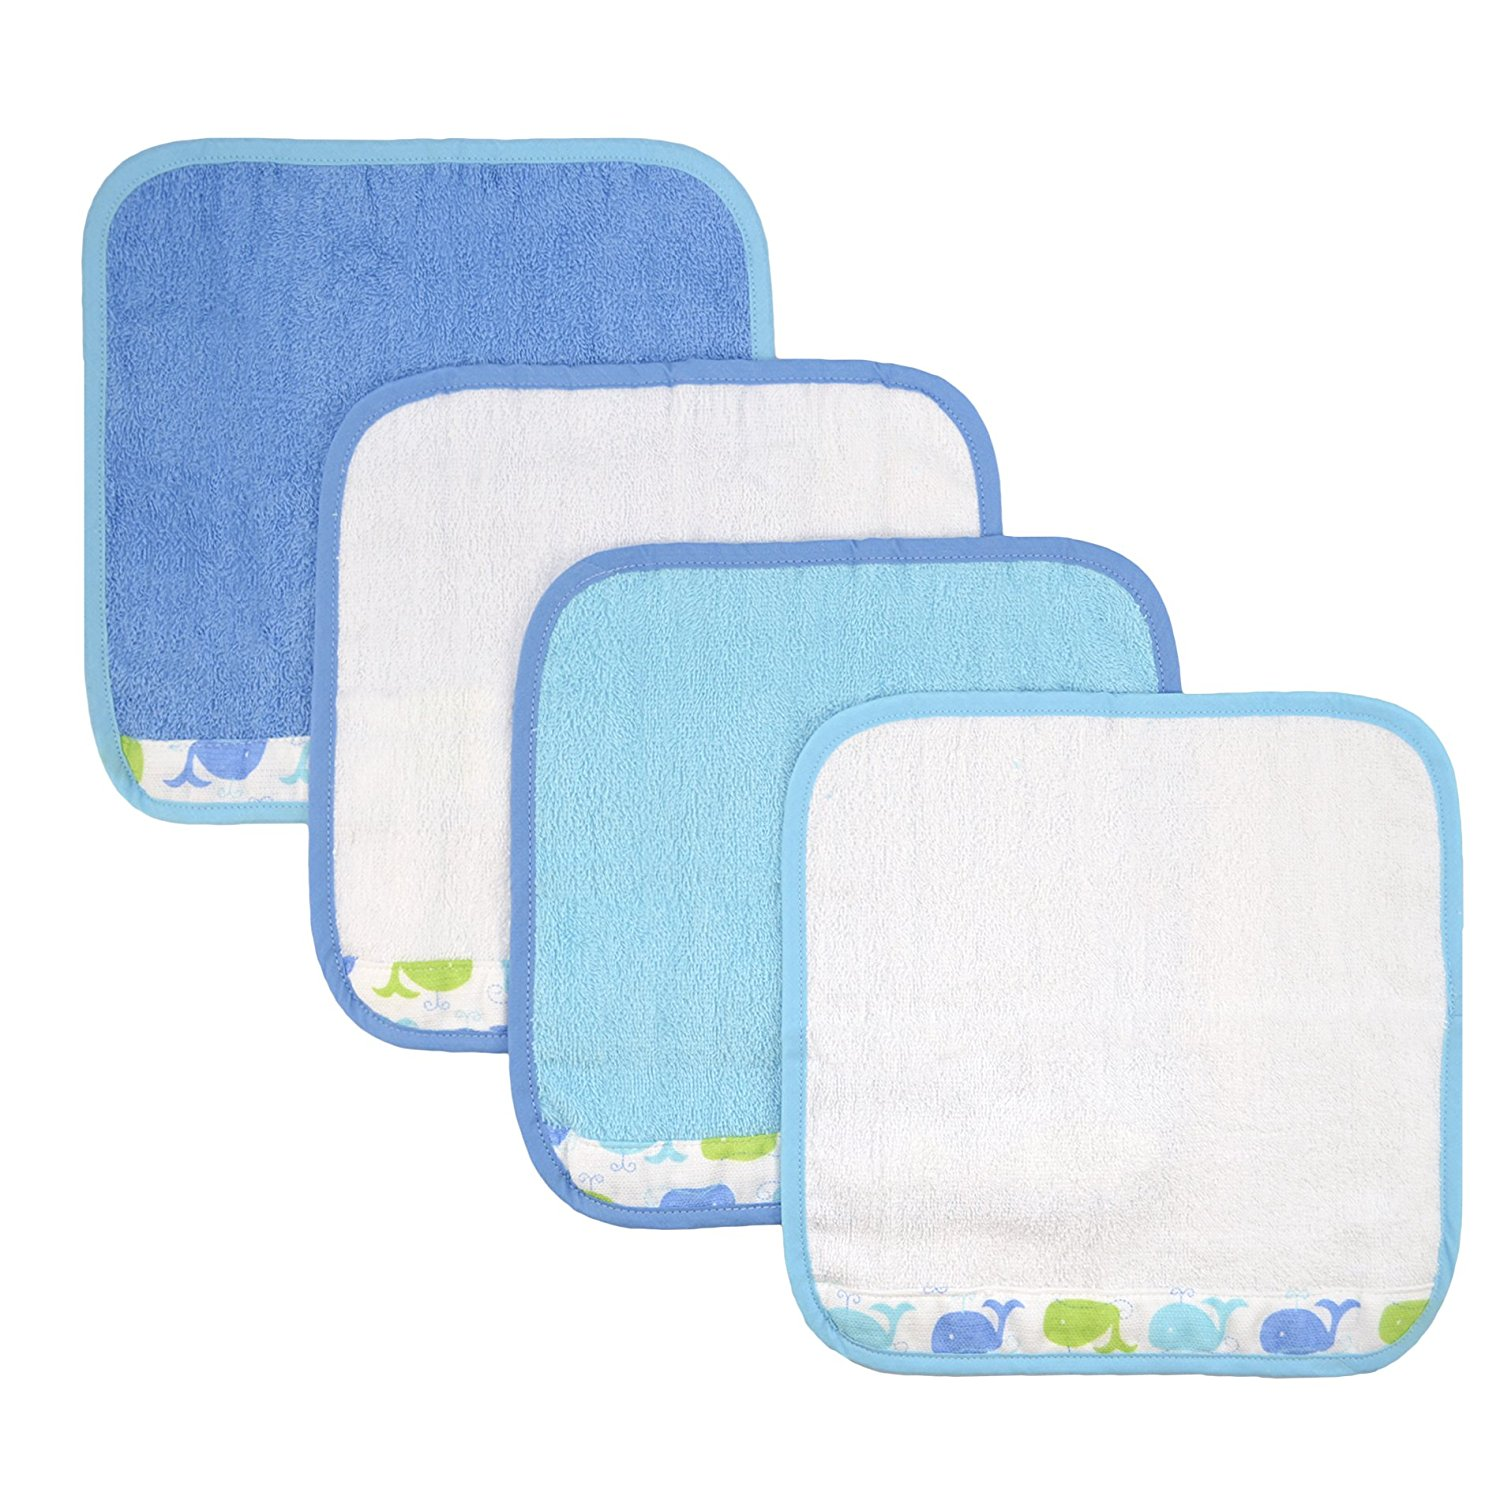 Just Bath Sea Brights 4-Pack Woven Washcloth Set, Blue Whales, 100% Cotton By Just Born by Just Born